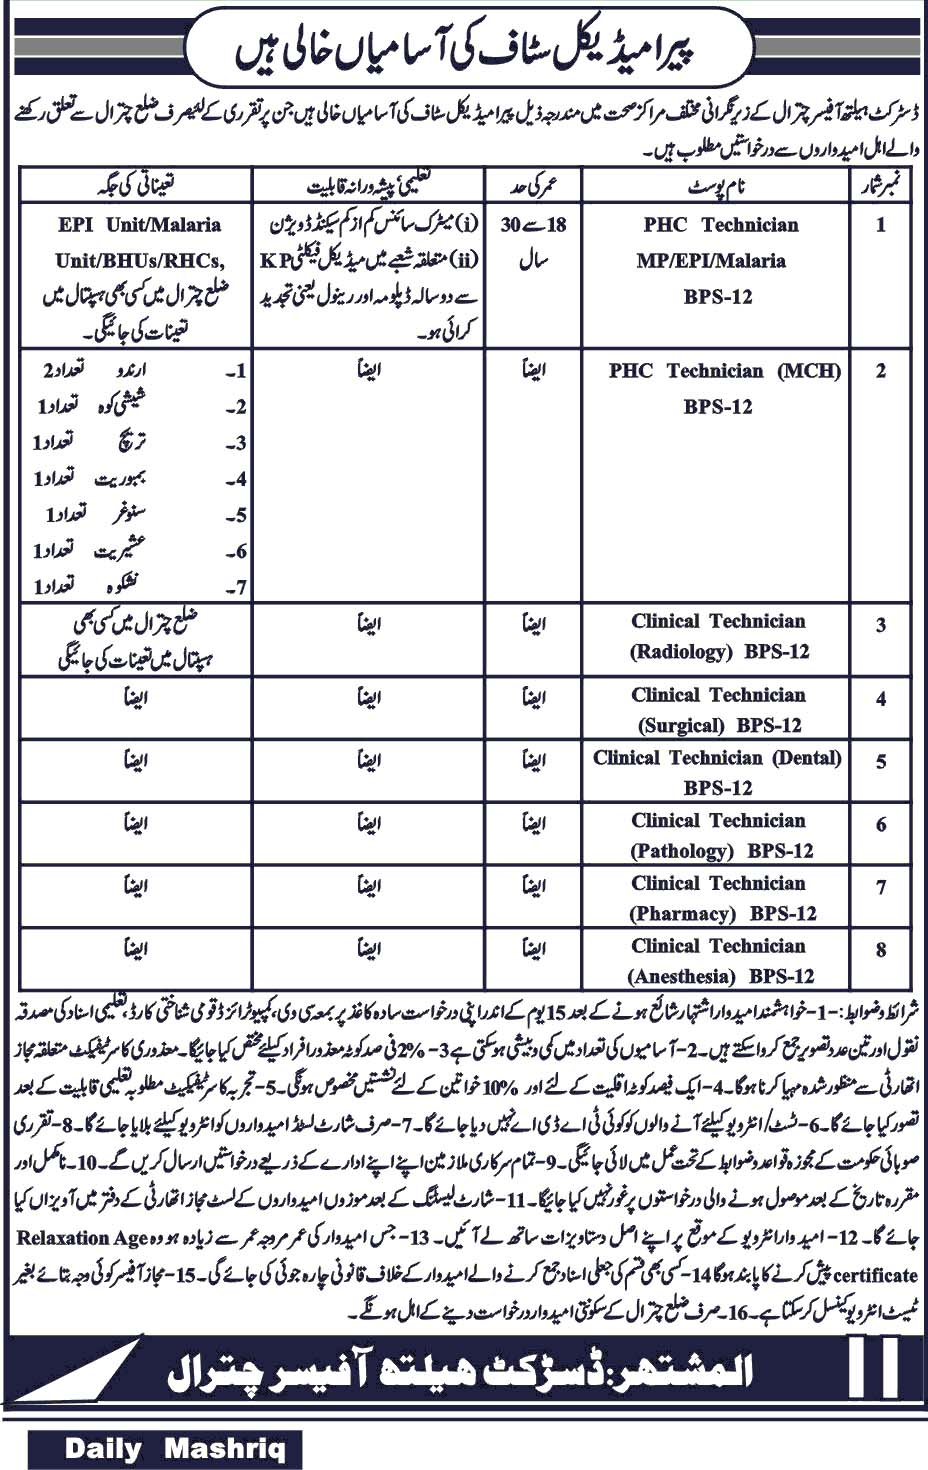 Pera Medical Staff Jobs in District Health Officer Chitral 2019